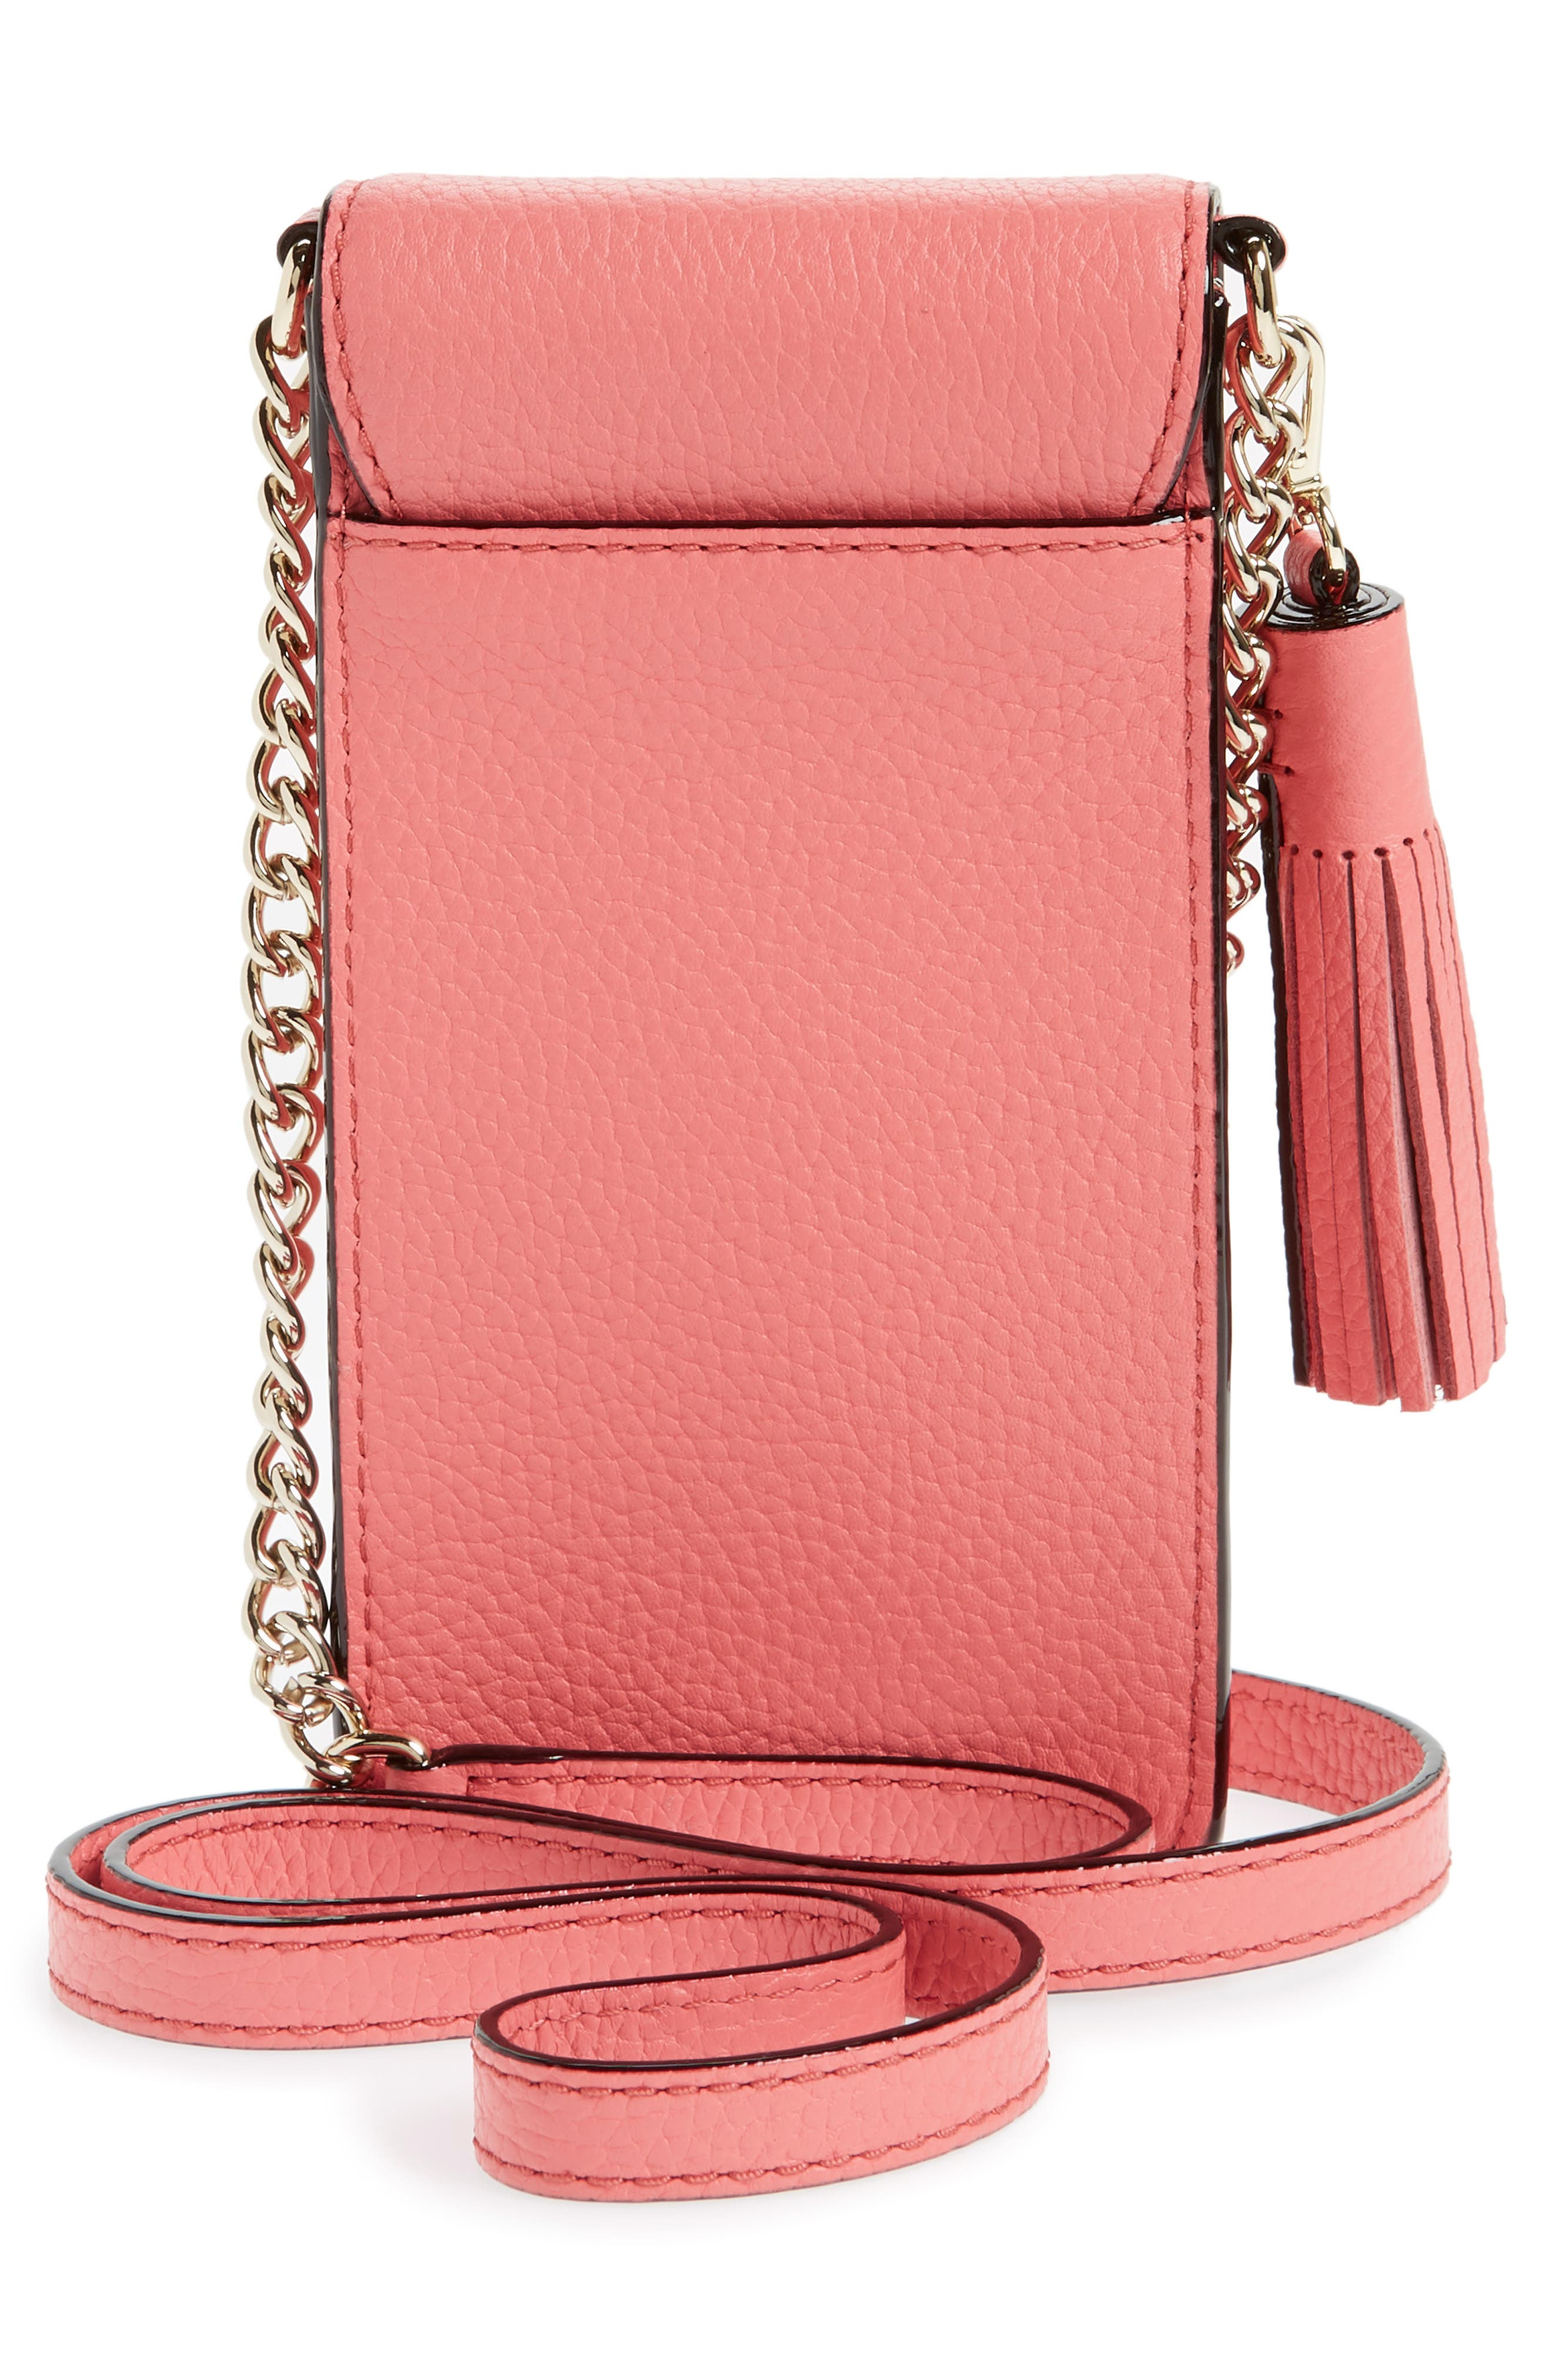 north/south leather smartphone crossbody bag,                             Alternate thumbnail 3, color,                             CORAL PEBBLE